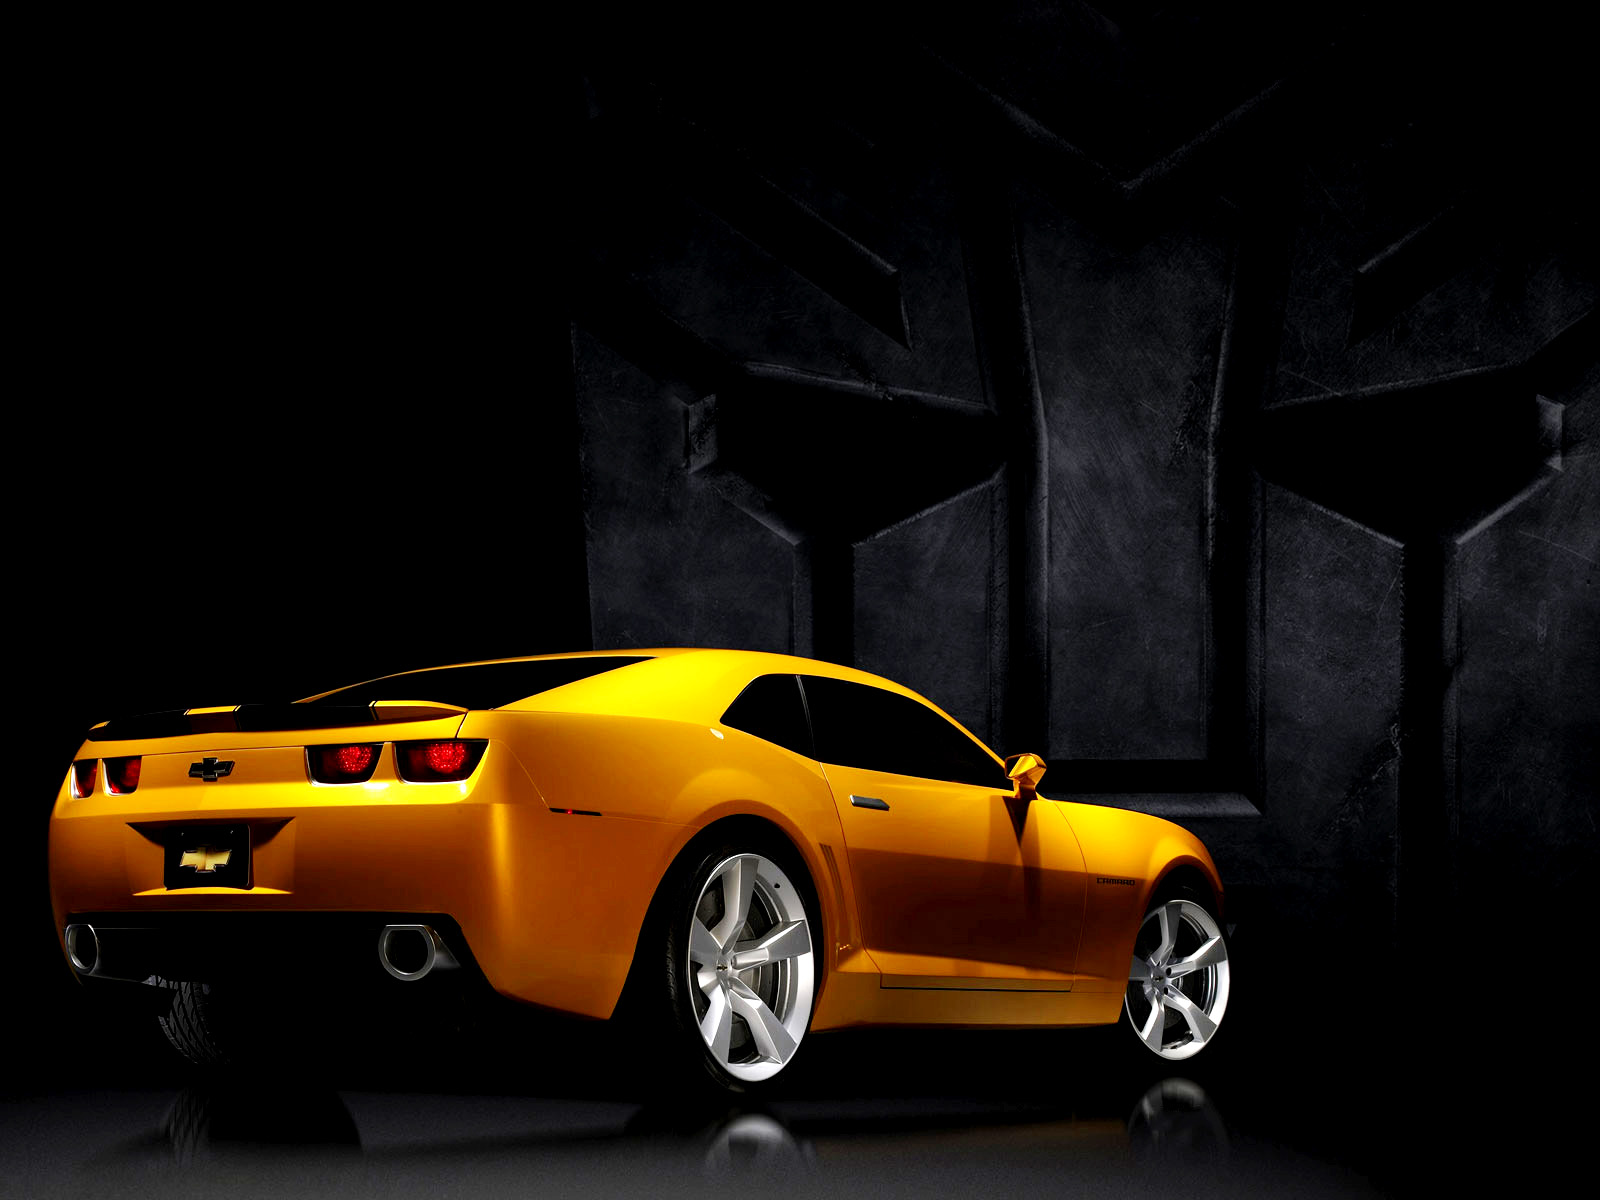 Bumblebee Transformers HD Wallpapers Download Wallpapers in HD 1600x1200